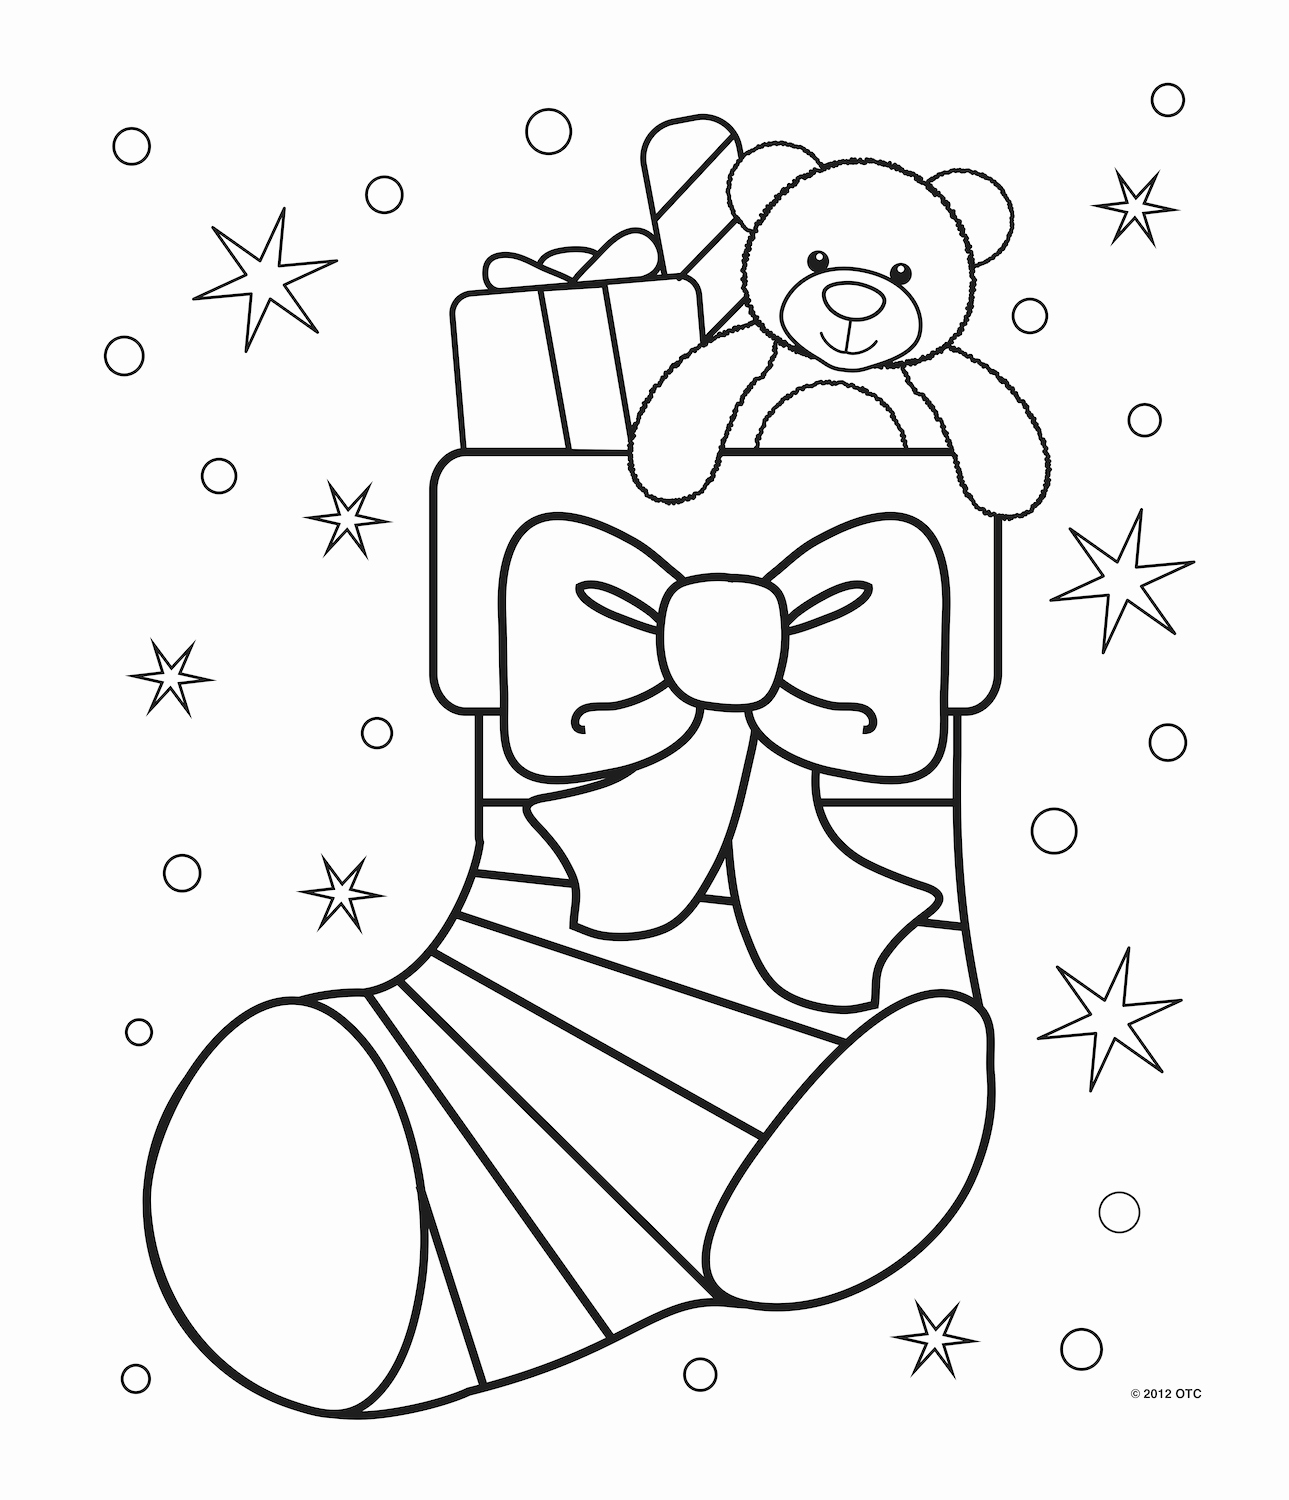 lego christmas coloring pages drawing lego minifigures christmas drawing ideas christmas lego coloring pages